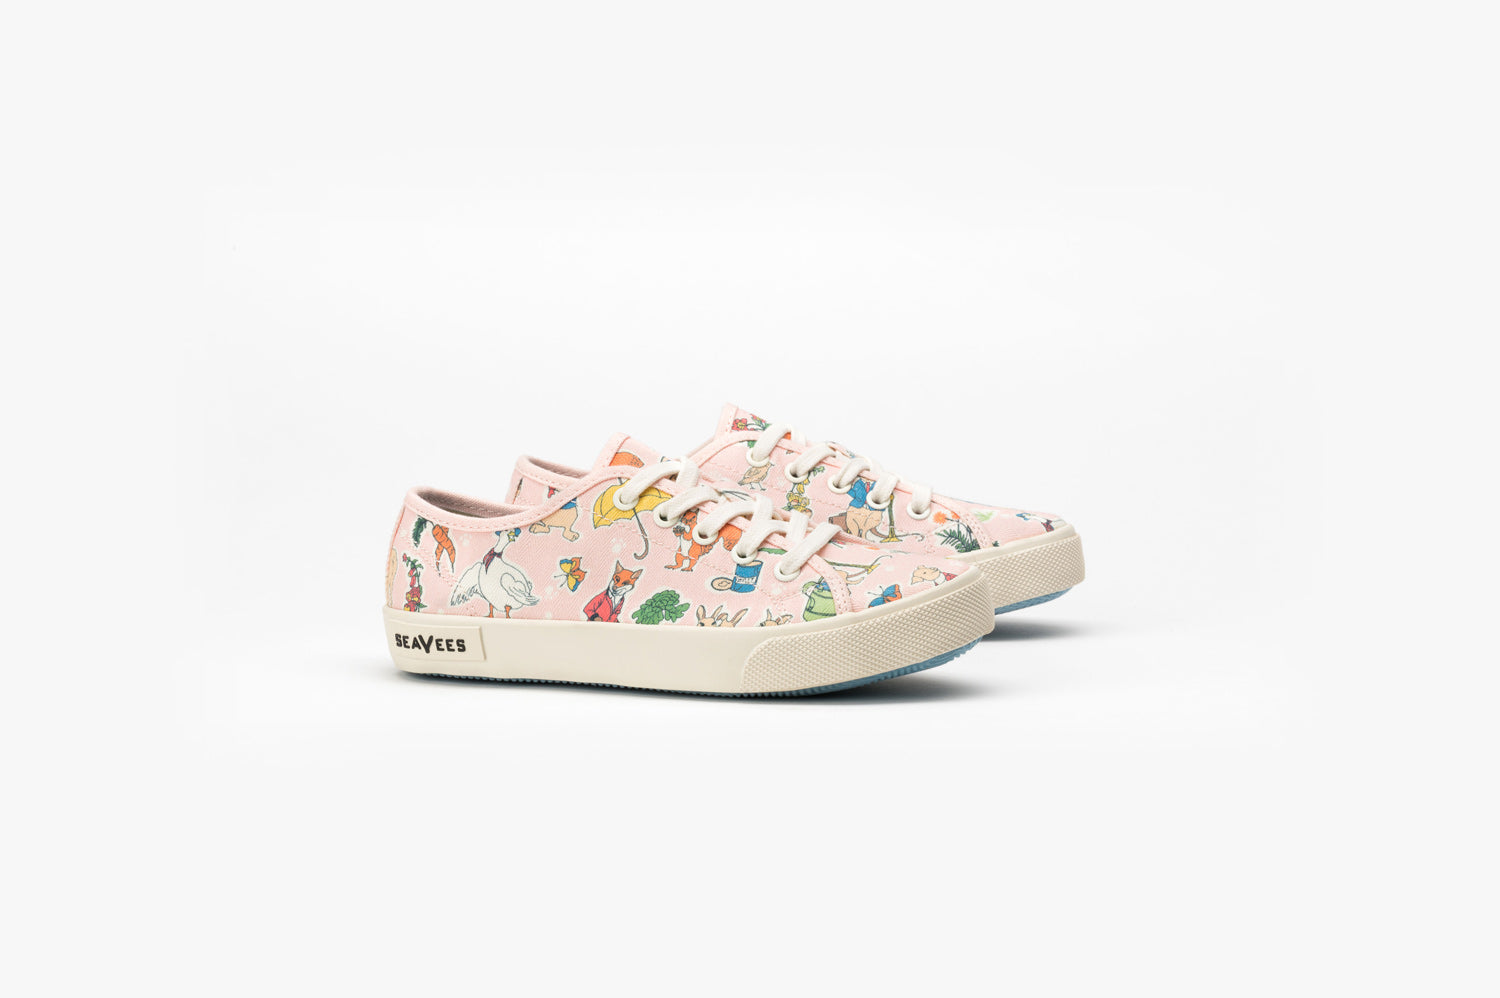 Big Kids - Monterey Sneaker Peter Rabbit - Pink